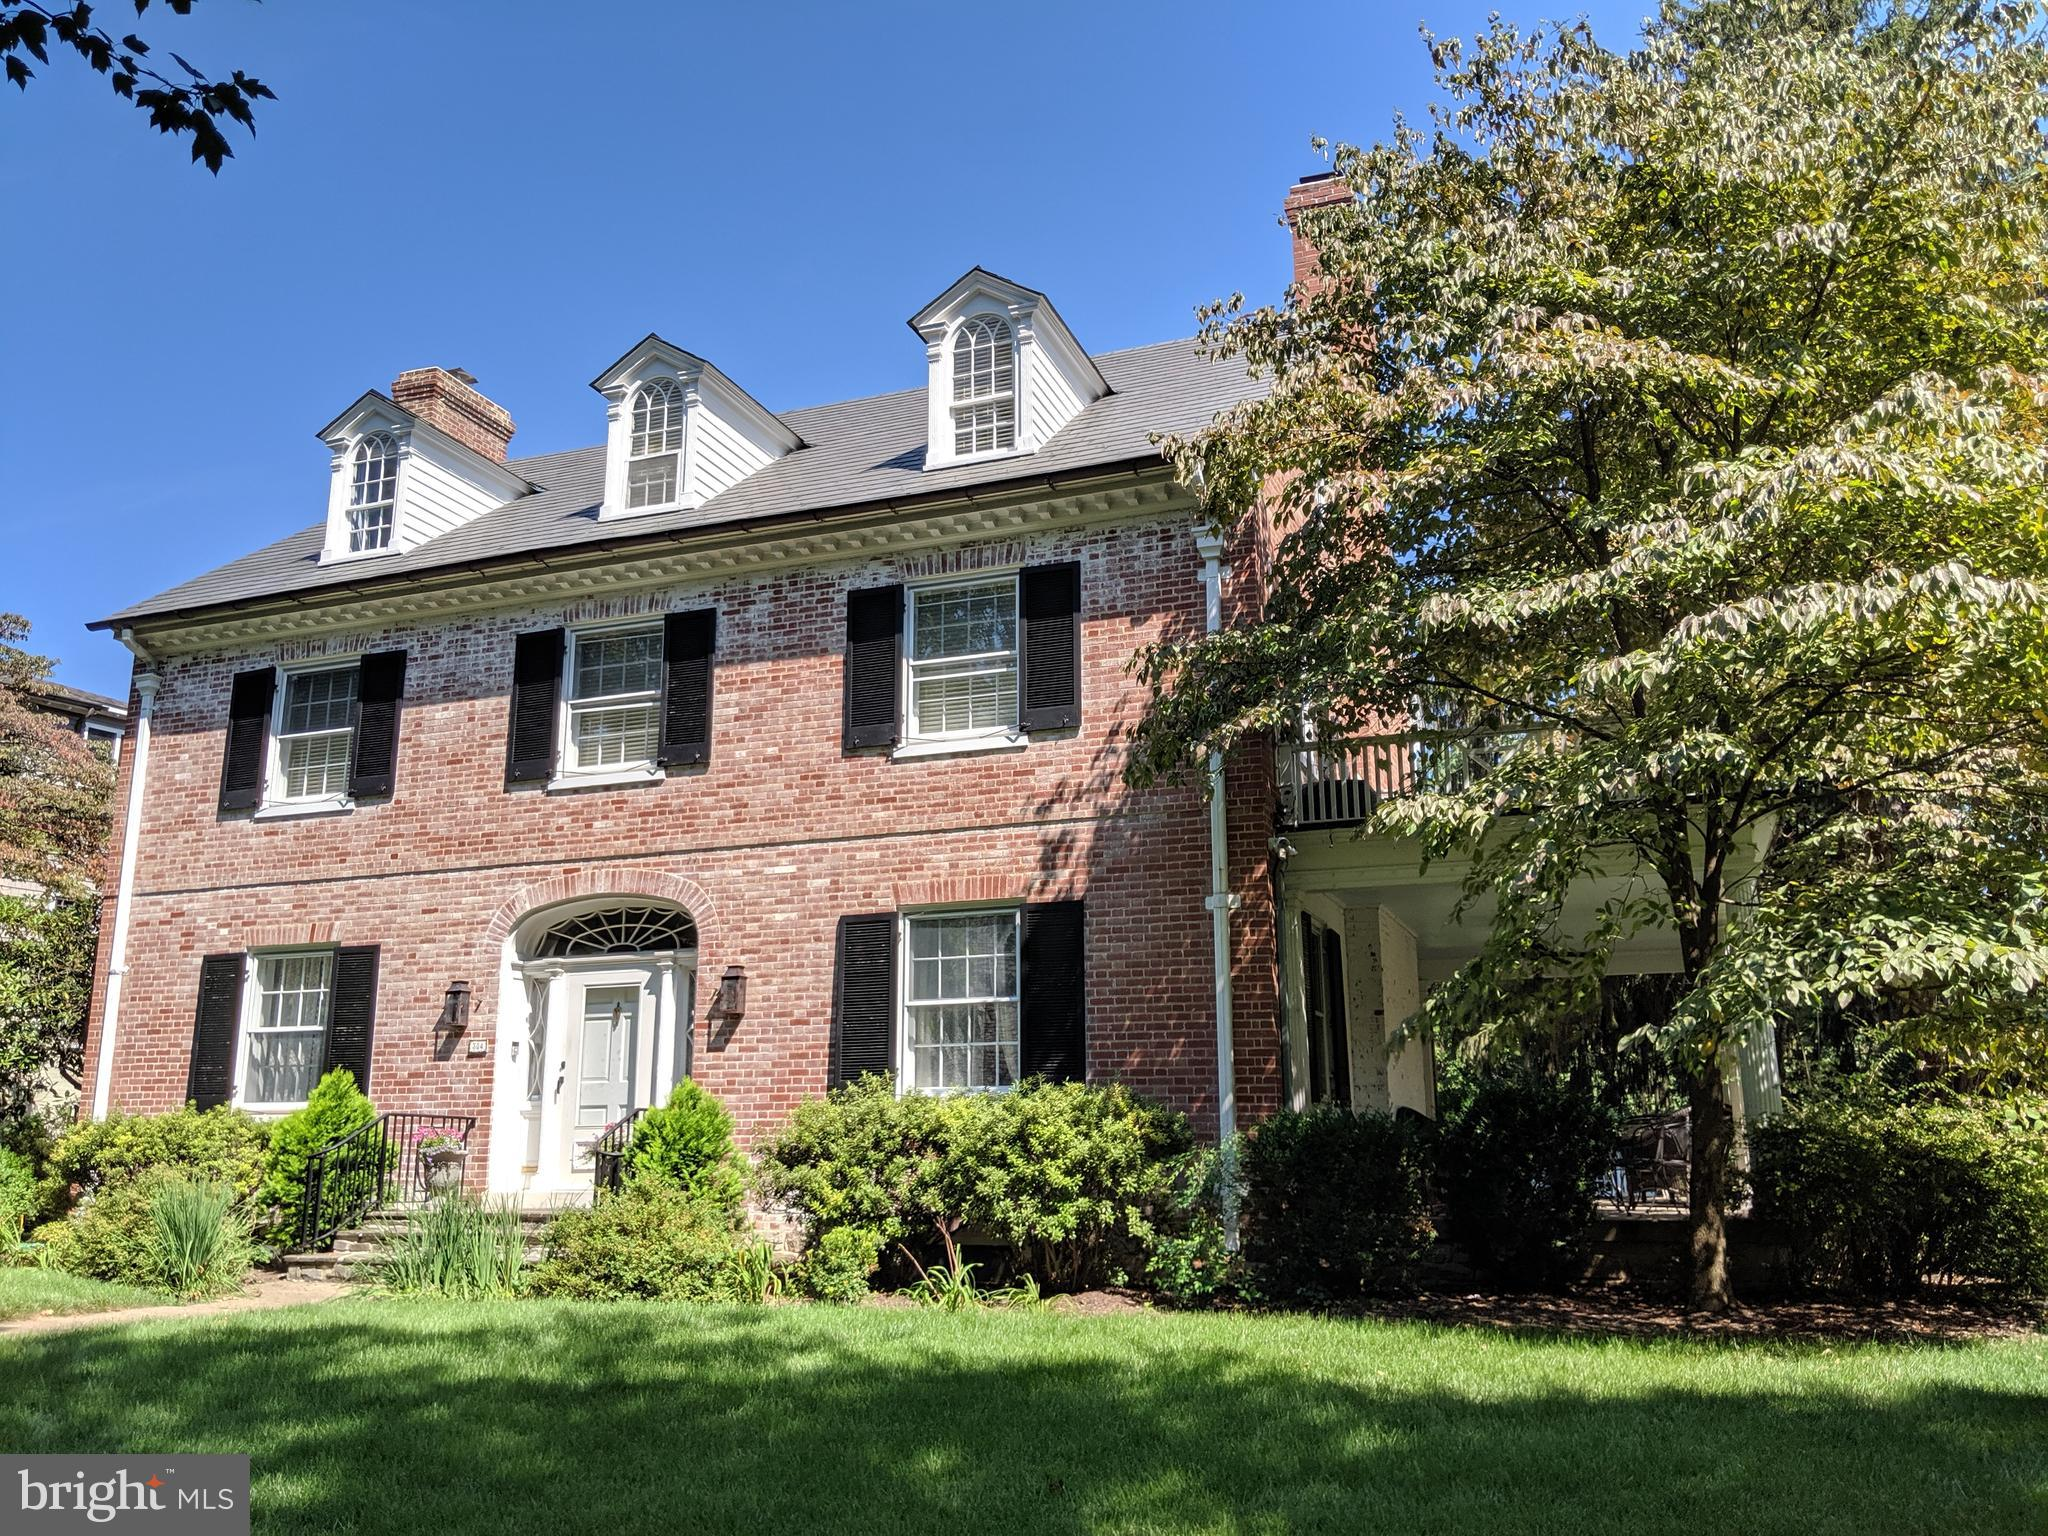 304 UPPER COLLEGE TERRACE, FREDERICK, MD 21701